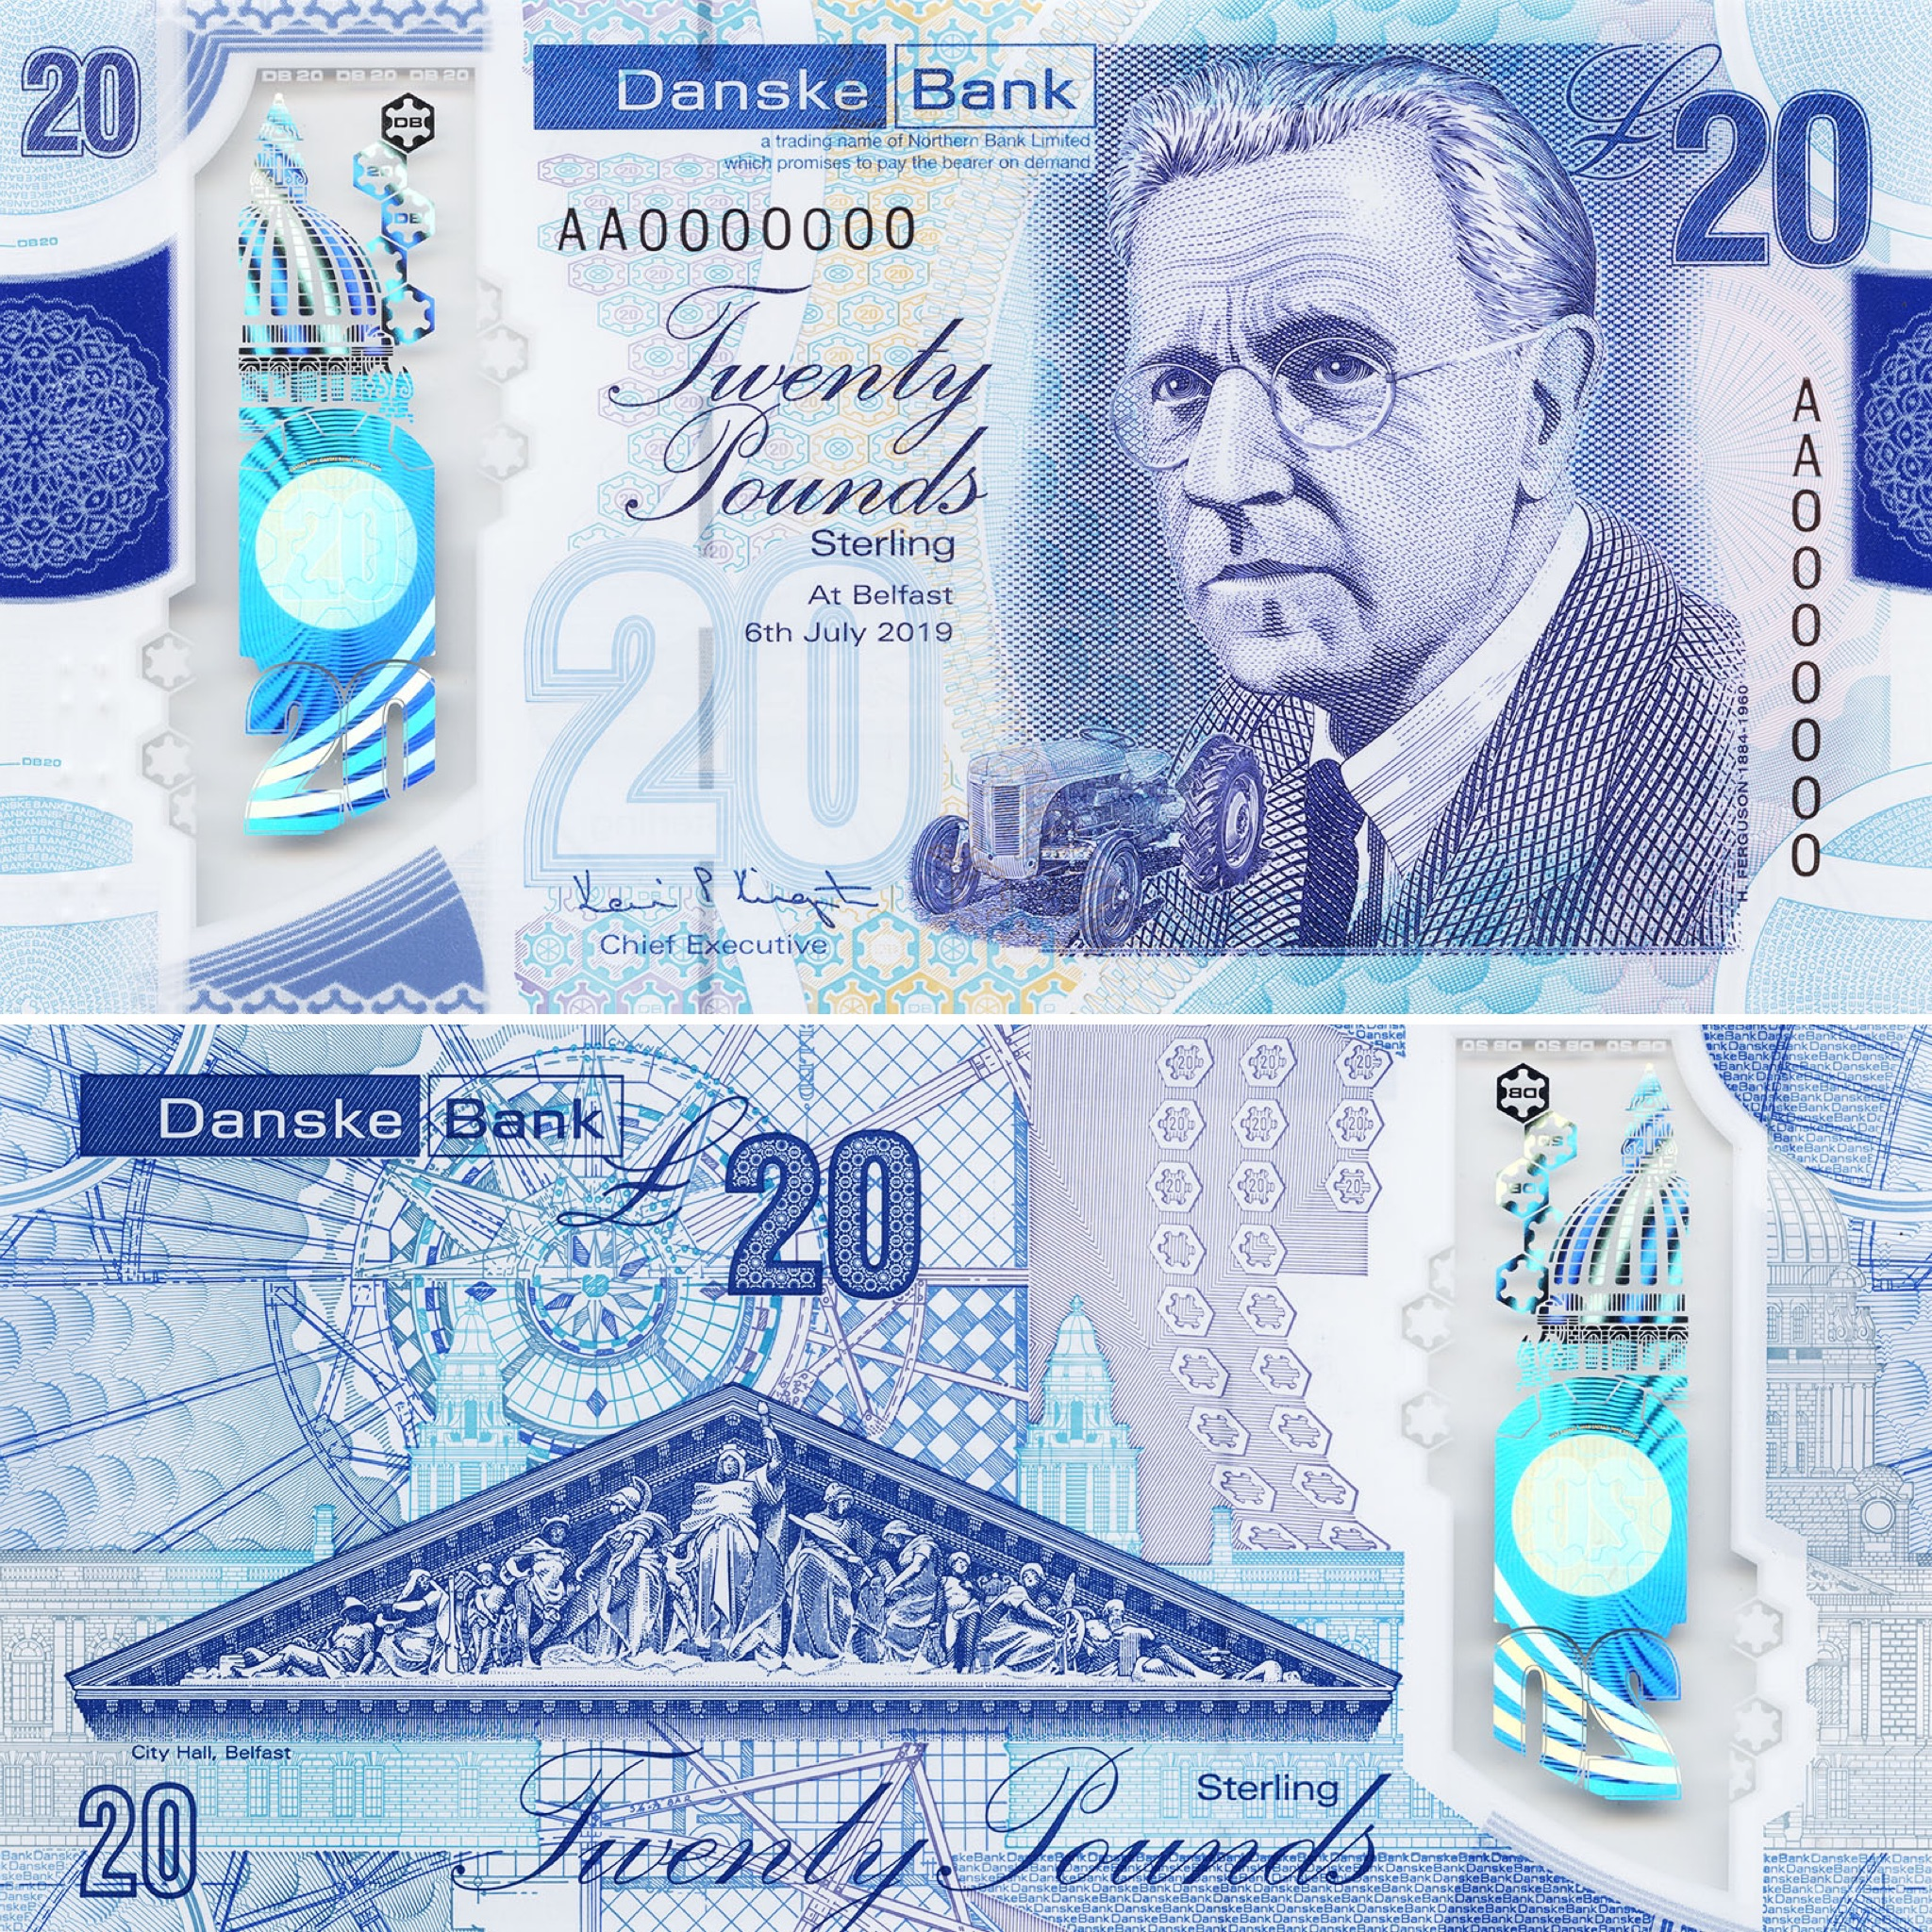 Image showing the front and back of the new Danske Bank £20 polymer note. The note has purple and blue hues, with a portrait of Harry Ferguson on the front with a small tractor and some close ups of Belfast City Hall on the back.